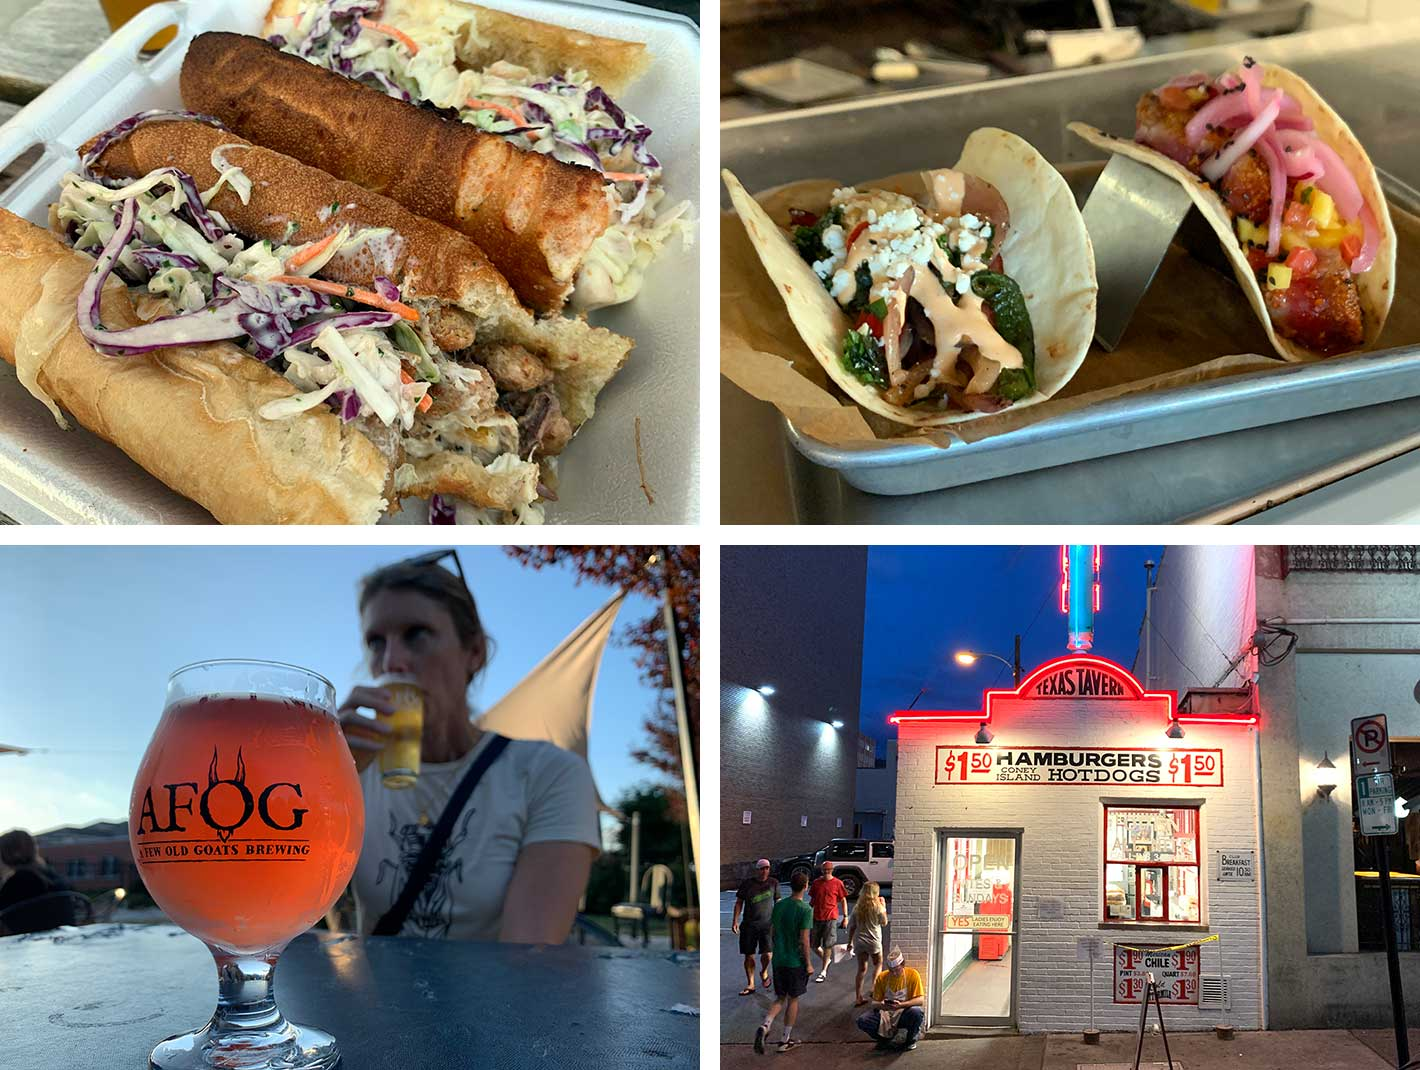 tacos sandwiches beer and hot dogs are great food options in roanoke virginia